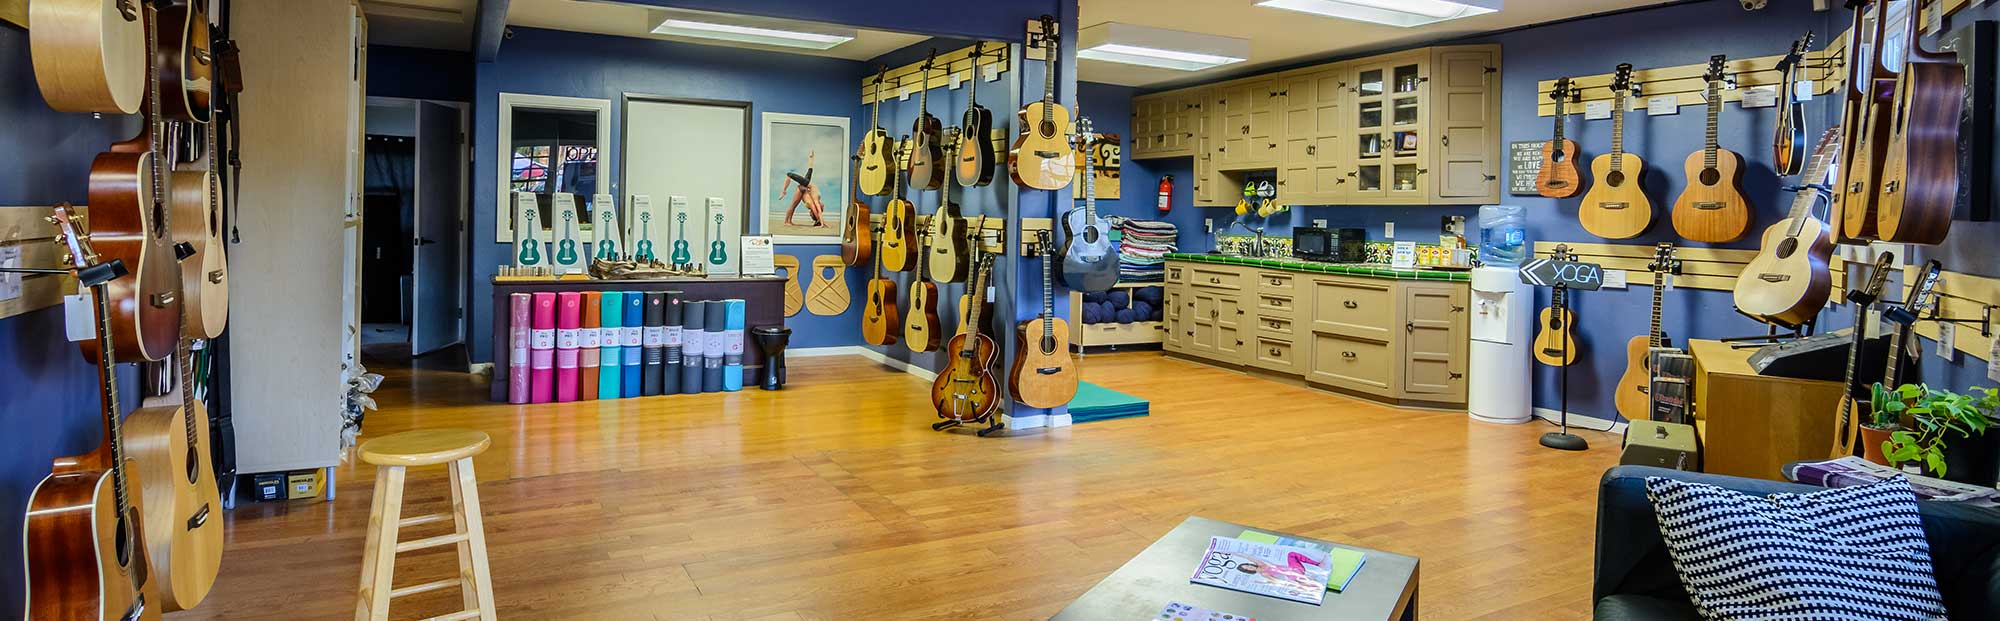 The Guitar Sales Floor at Riffs Studios in La Jolla, CA